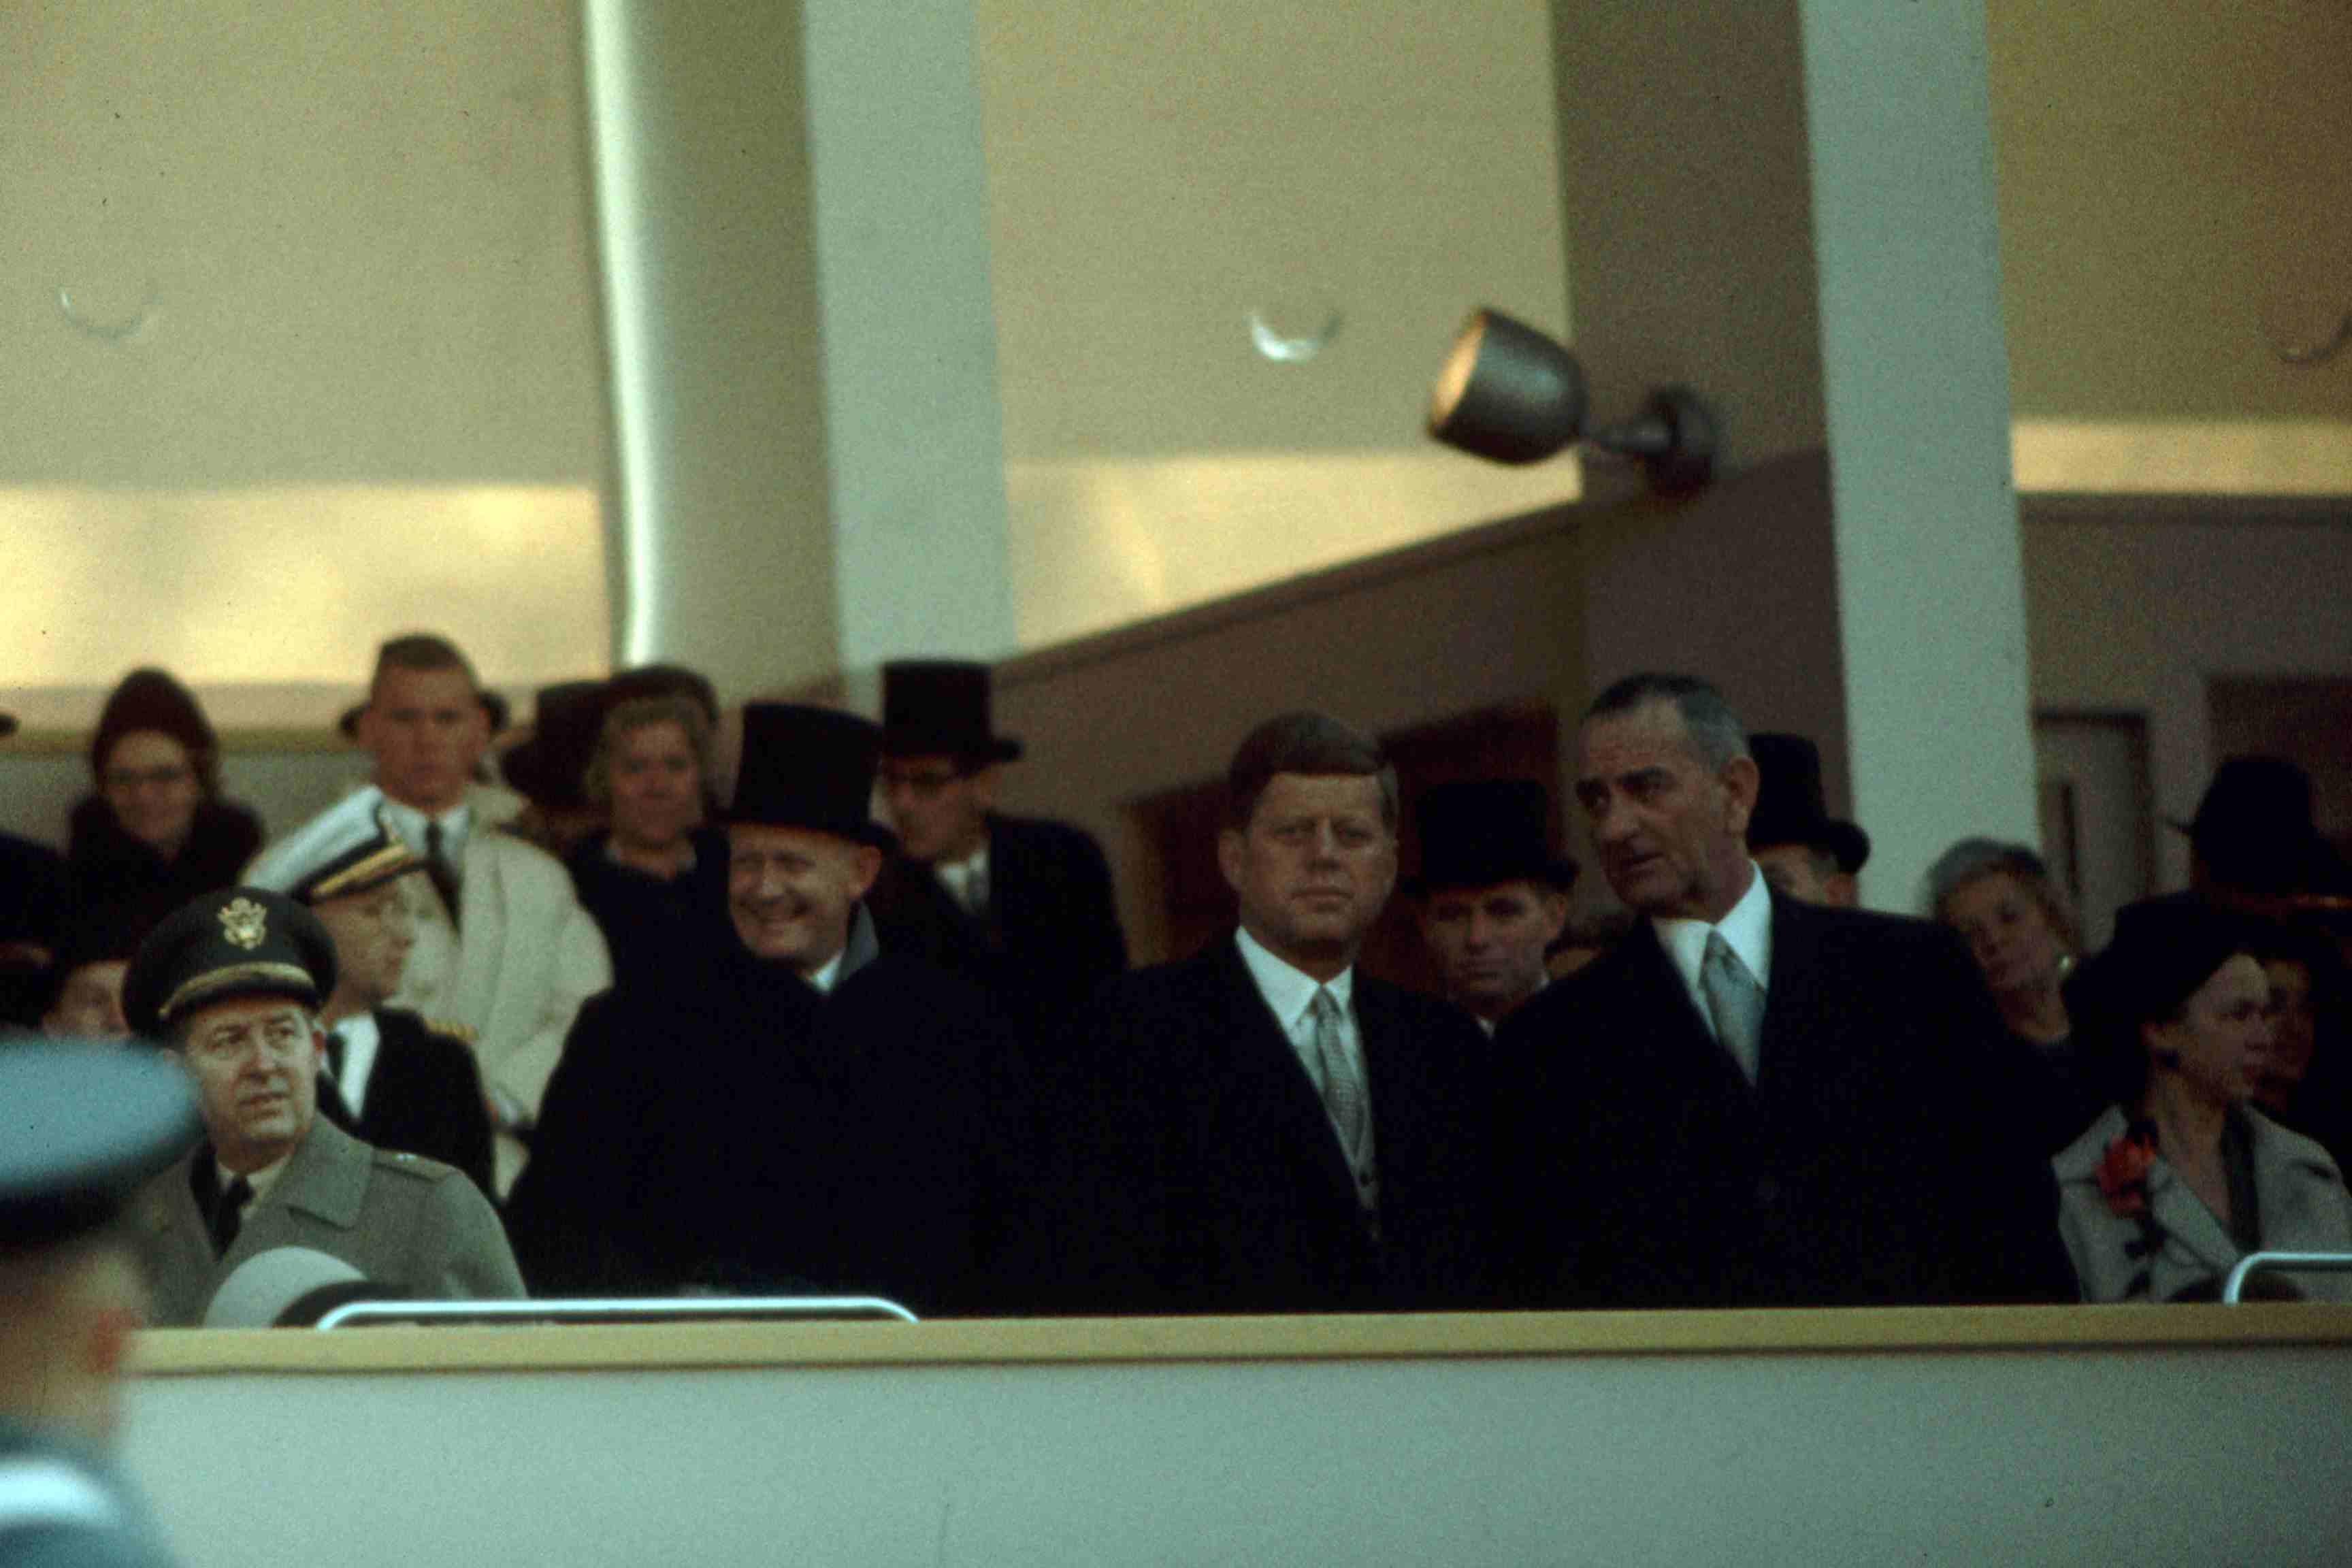 LBJ and JFK at the latter's 1961 inauguration, color photo.